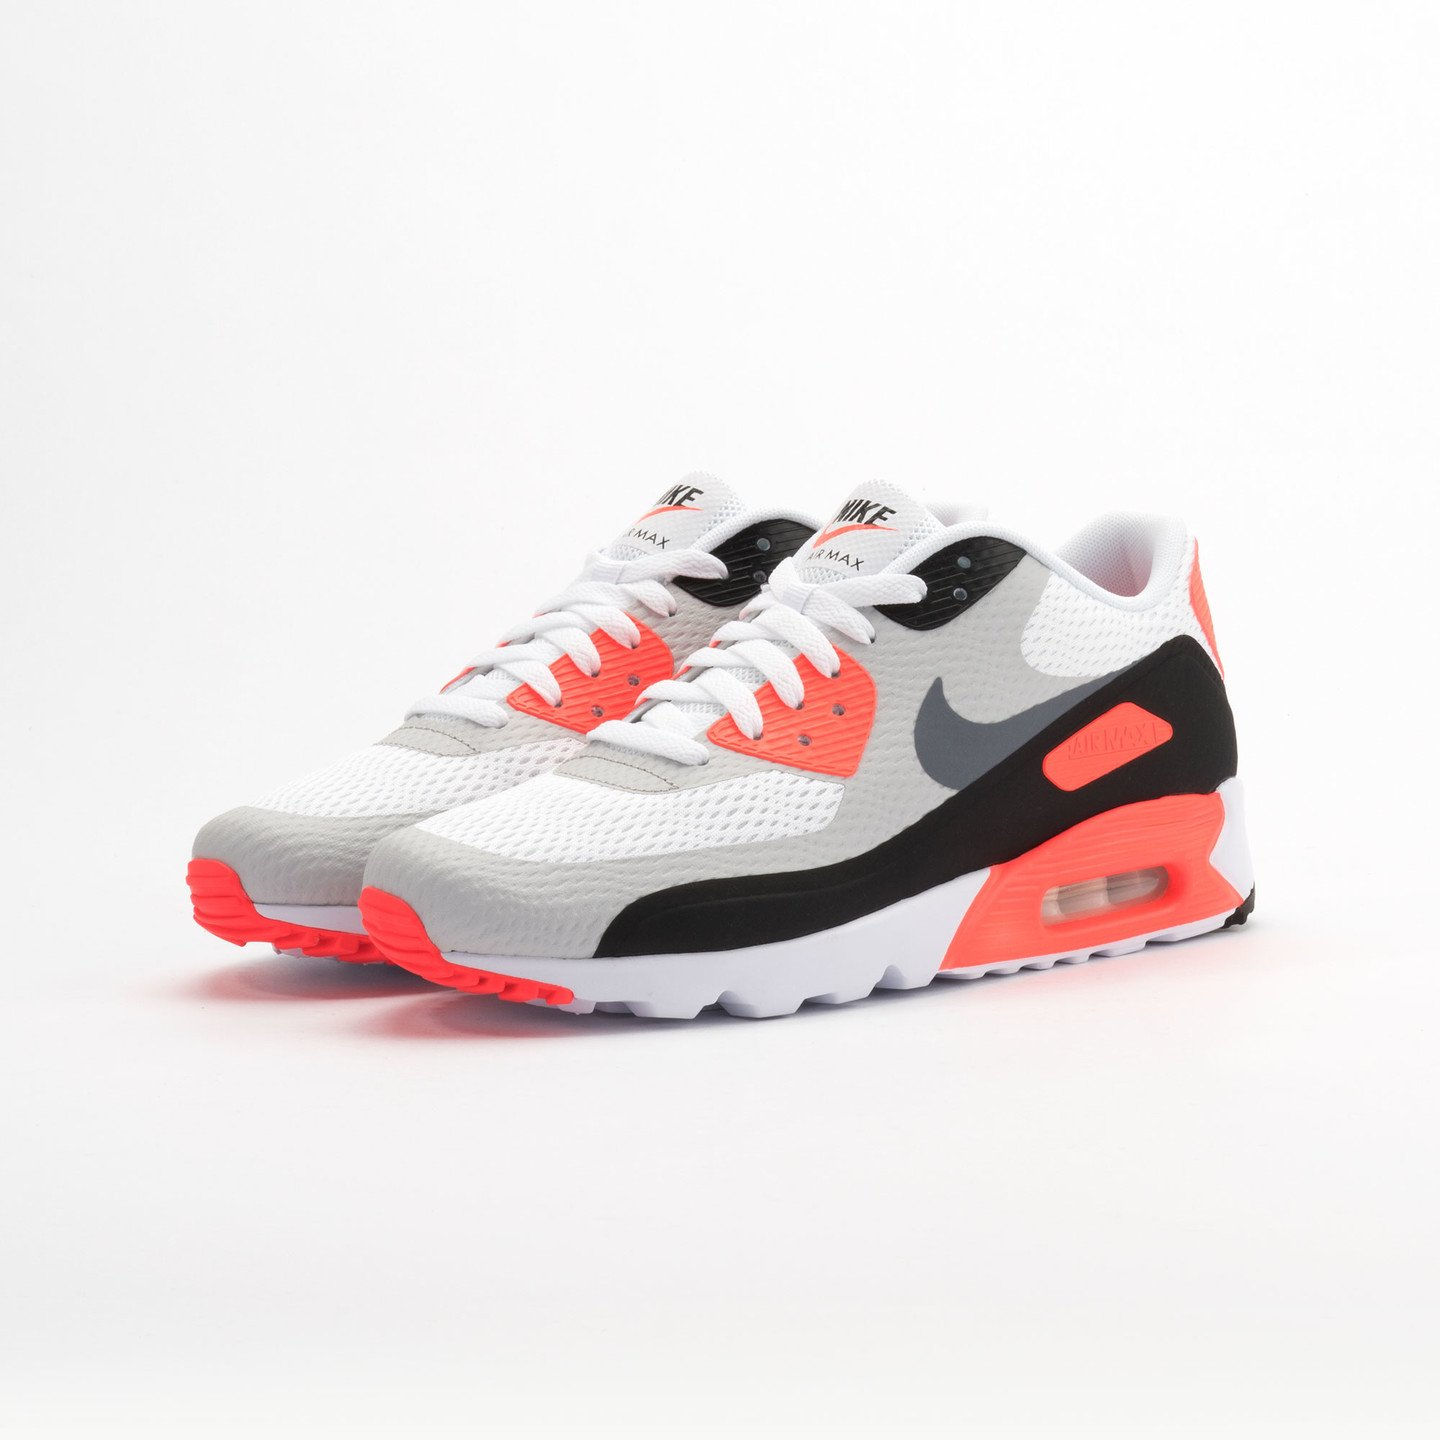 Nike Air Max 90 OG Essential White / Black / Infrared 819474-106-46